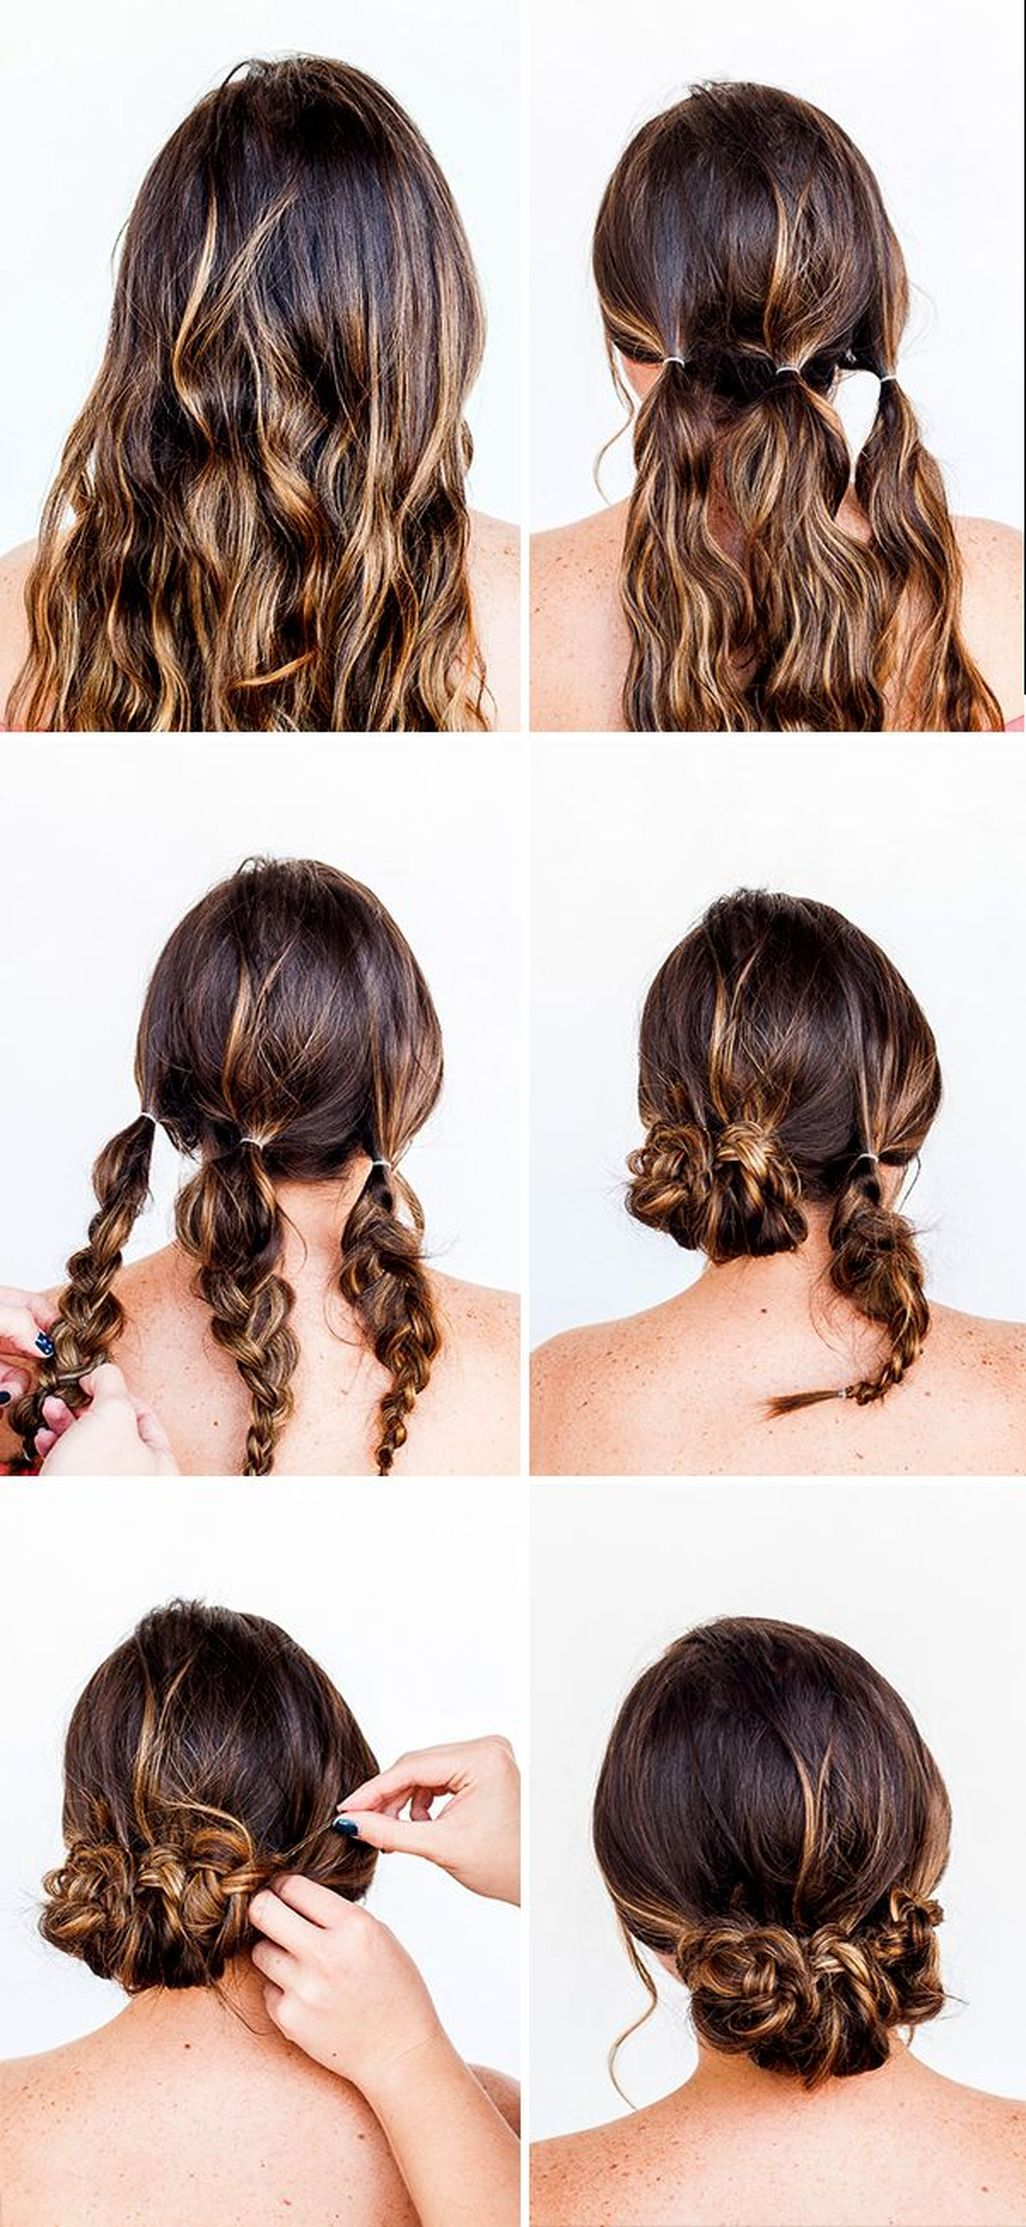 Simple hairstyle tutorials for all occasions  also pin by desirae alvarado on hair cut and styles pinterest rh